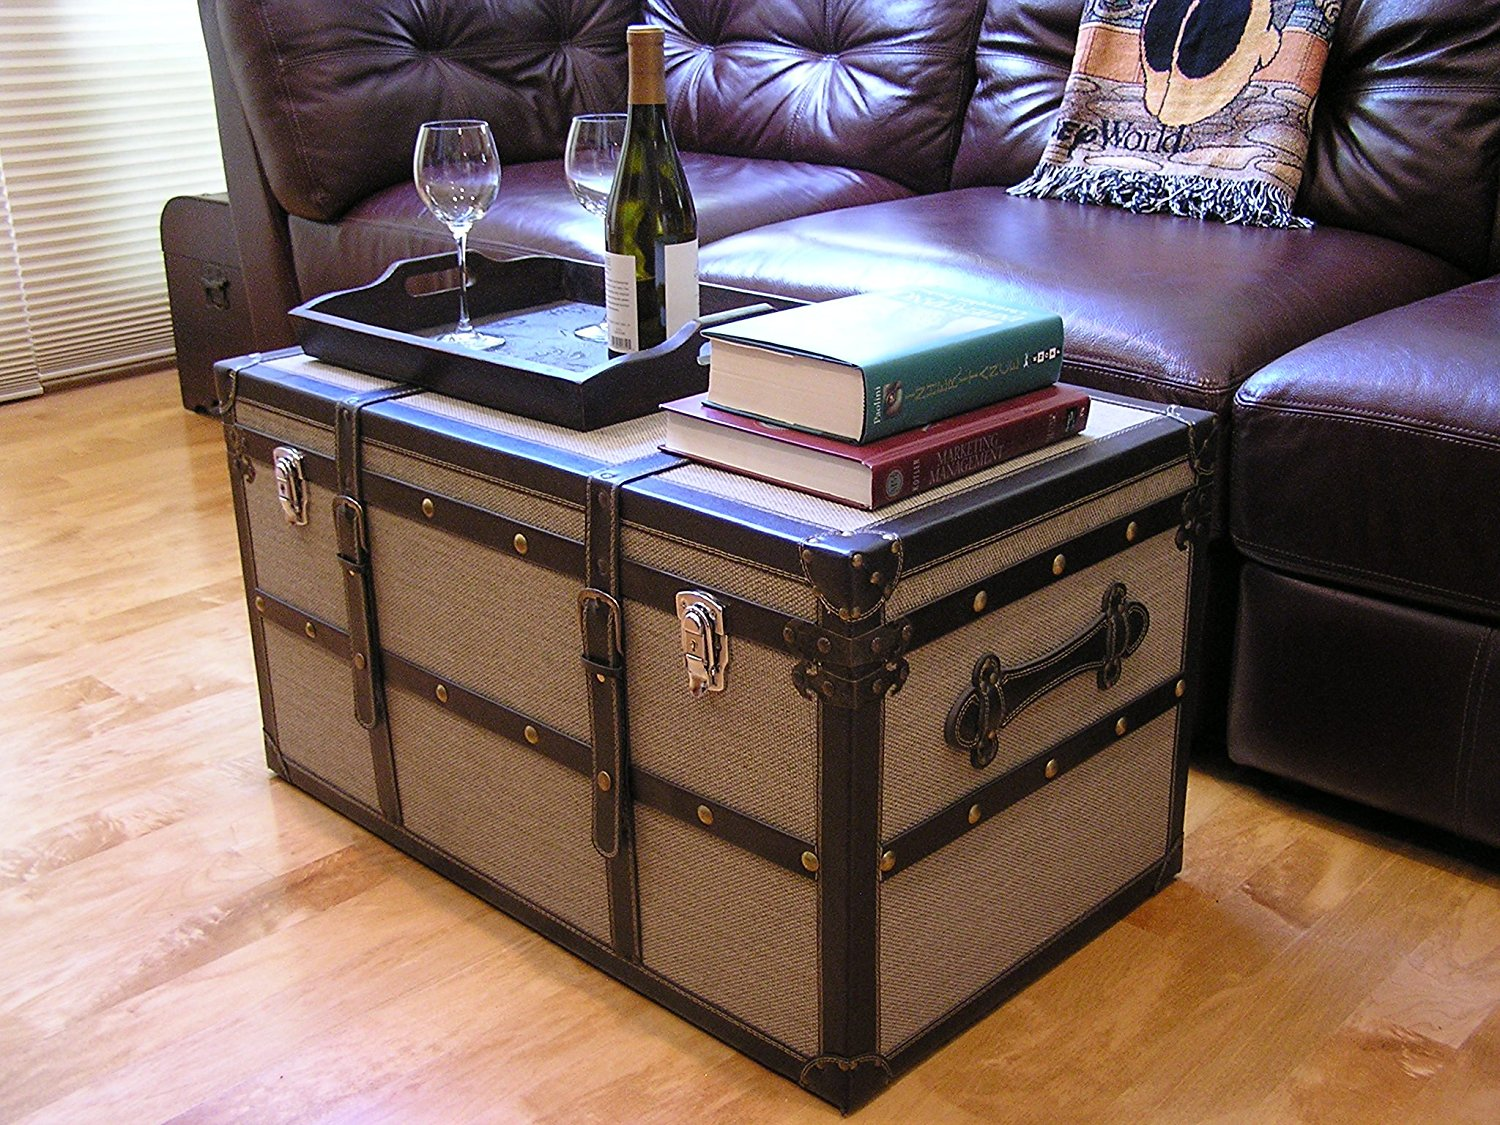 Picture of: Storage Trunk Furniture Royals Courage Concepts To Make Decorative Trunks